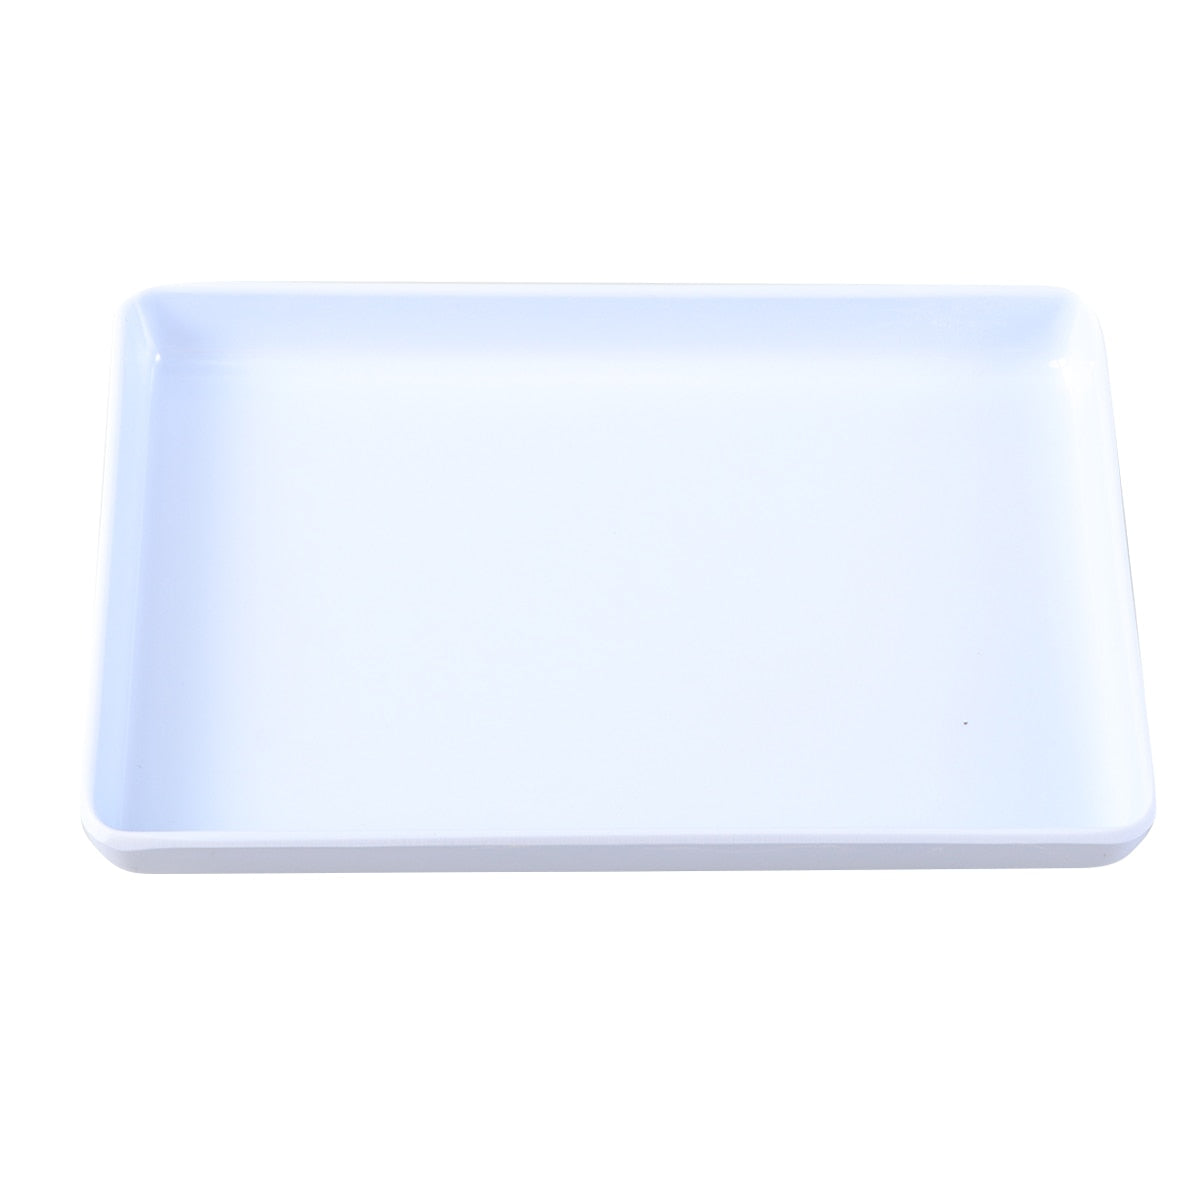 Trinket Tray Decorative Plastic White Holder Storage Organizer Jewelry Dish Plate for Rings Bracelets Earrings Storage Boxes A3